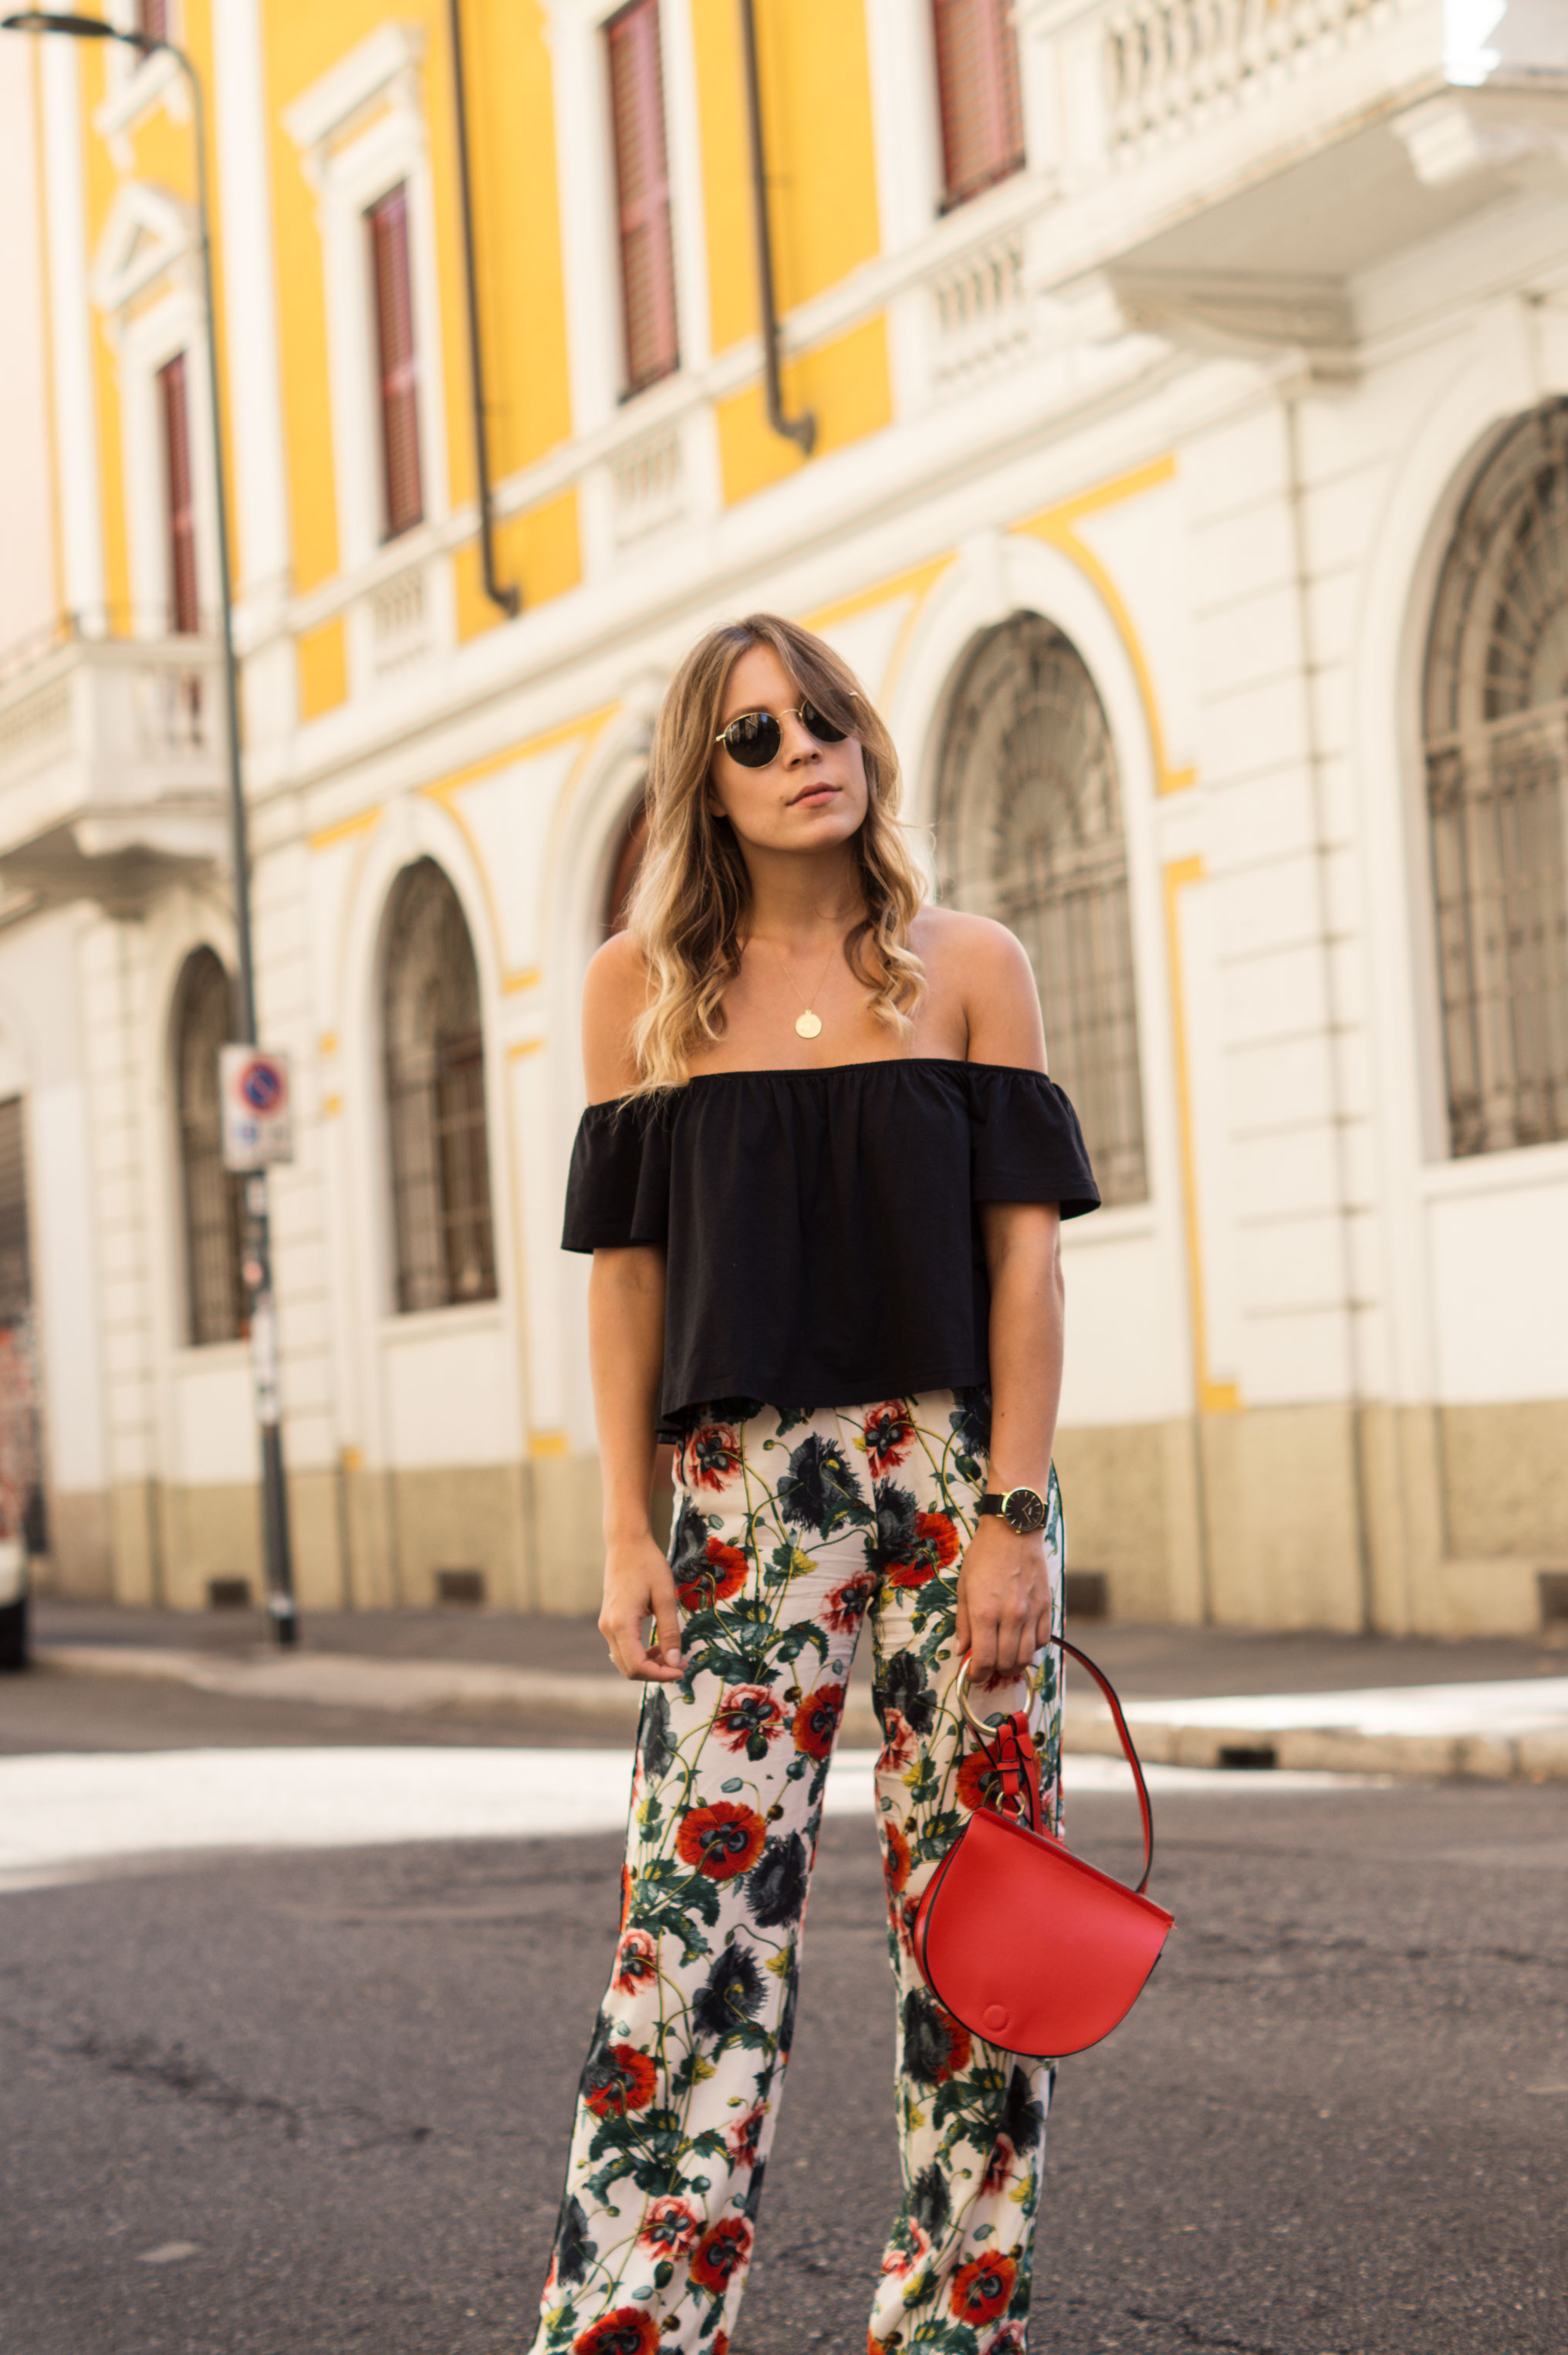 H&M Printhose Milan Sariety Fashionblogger Sommerlook Mailand rote Tasche Chanel Schuhe Dupes Summer Floral Print-1